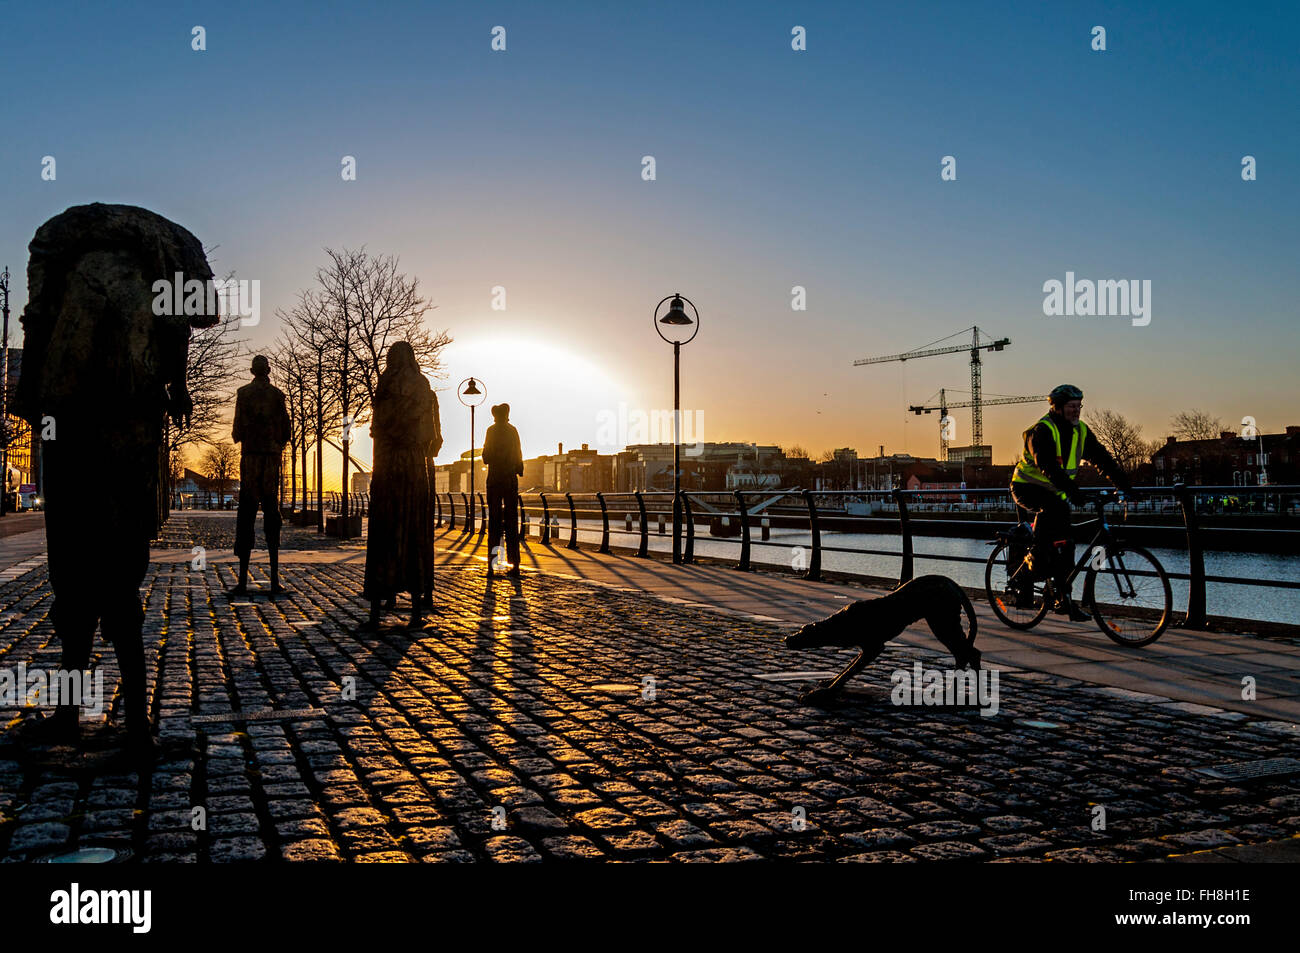 the famine memorial dublin ireland a man cycles past at sunrise